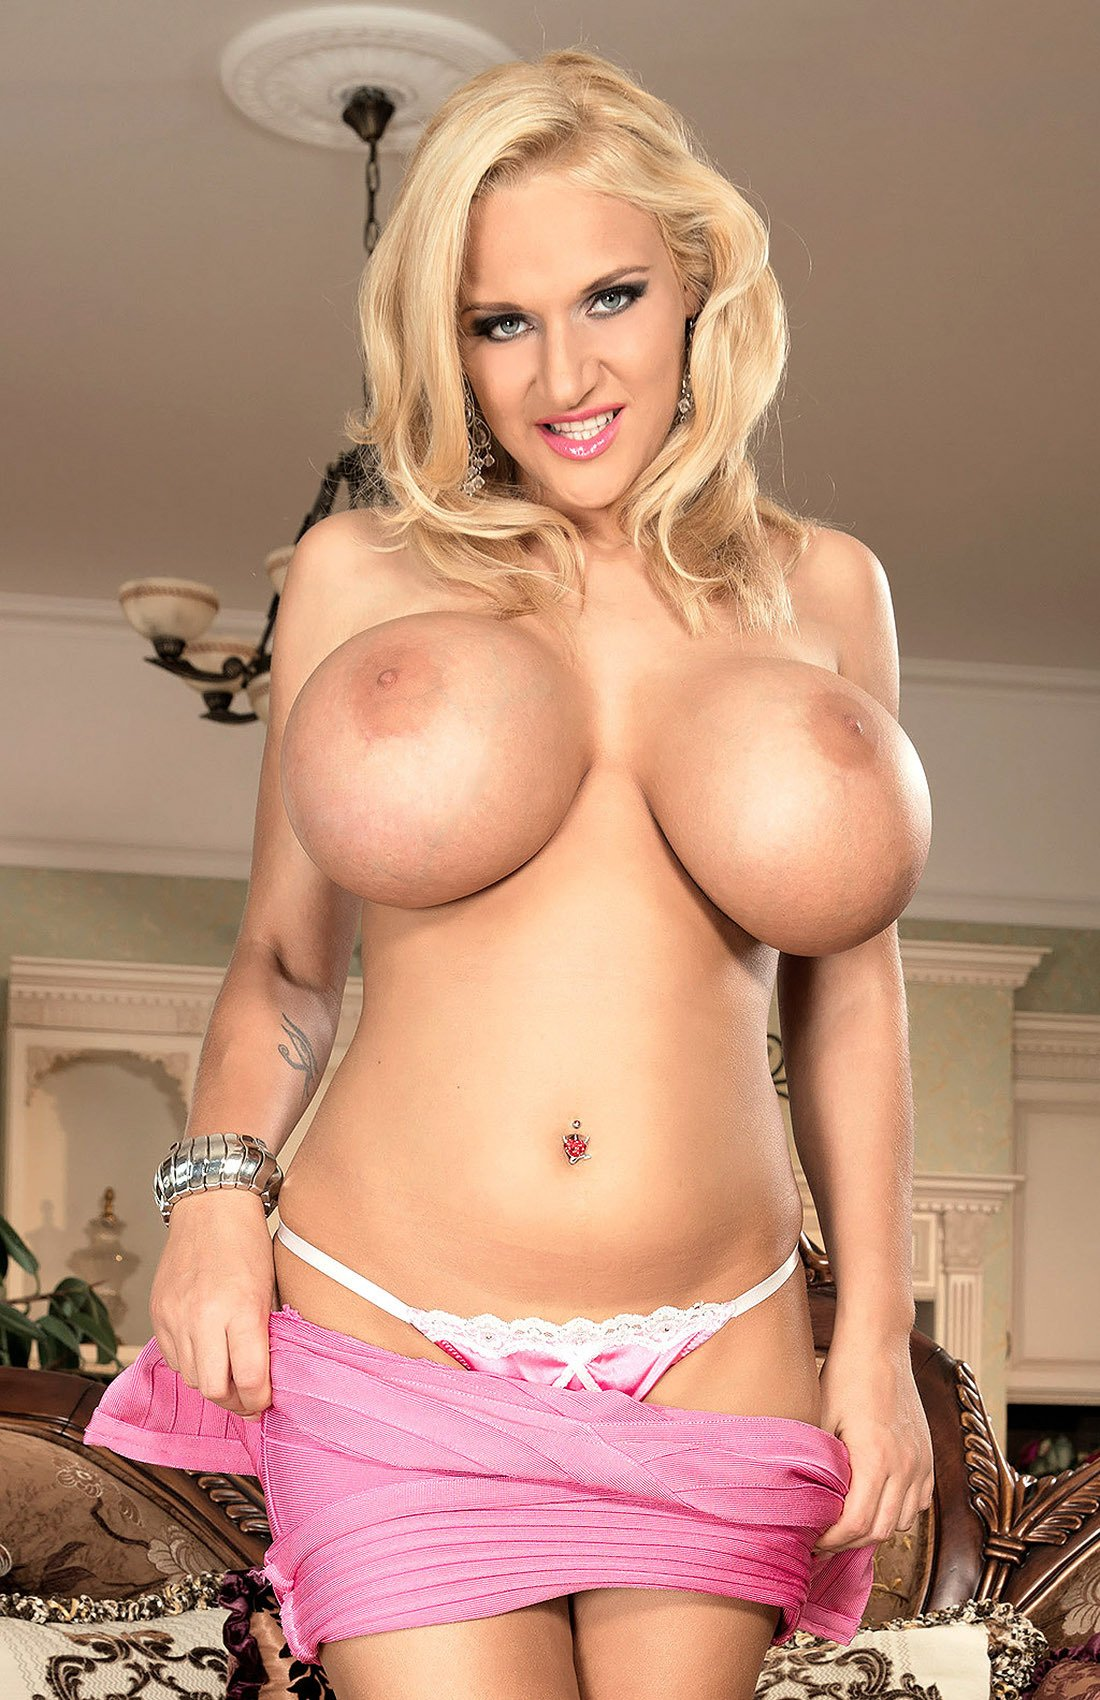 RT @IKPromotion: Check out @RealDollyFox and her double delights. https://t.co/sMosp9PjSt